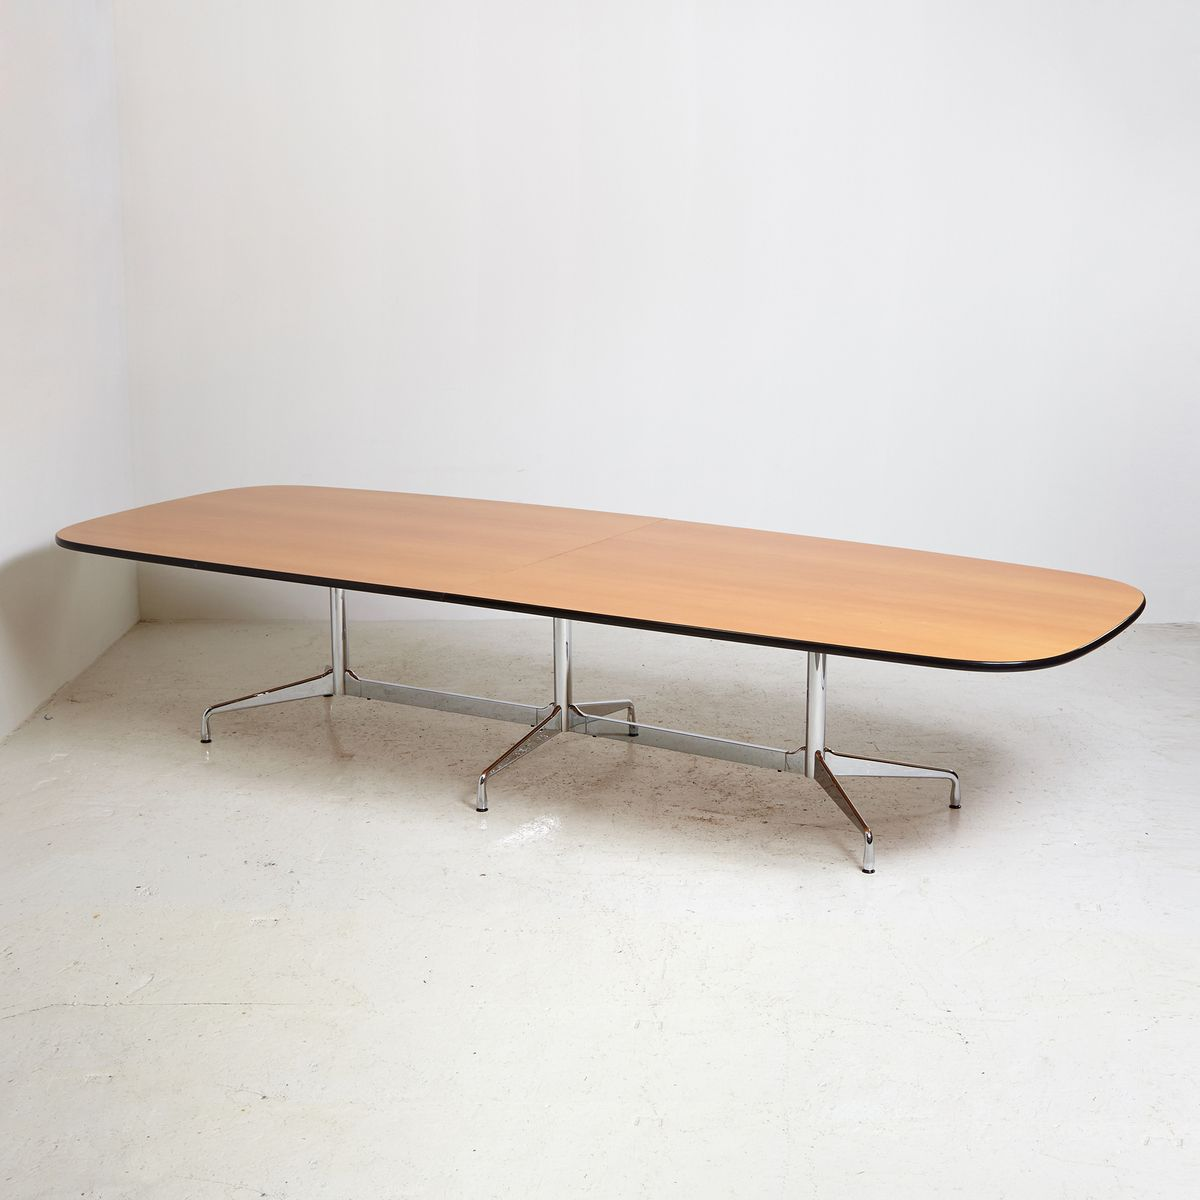 Tisch Eames Vitra Eames Table Charles Amp Ray Eames 1964 Meeting Table